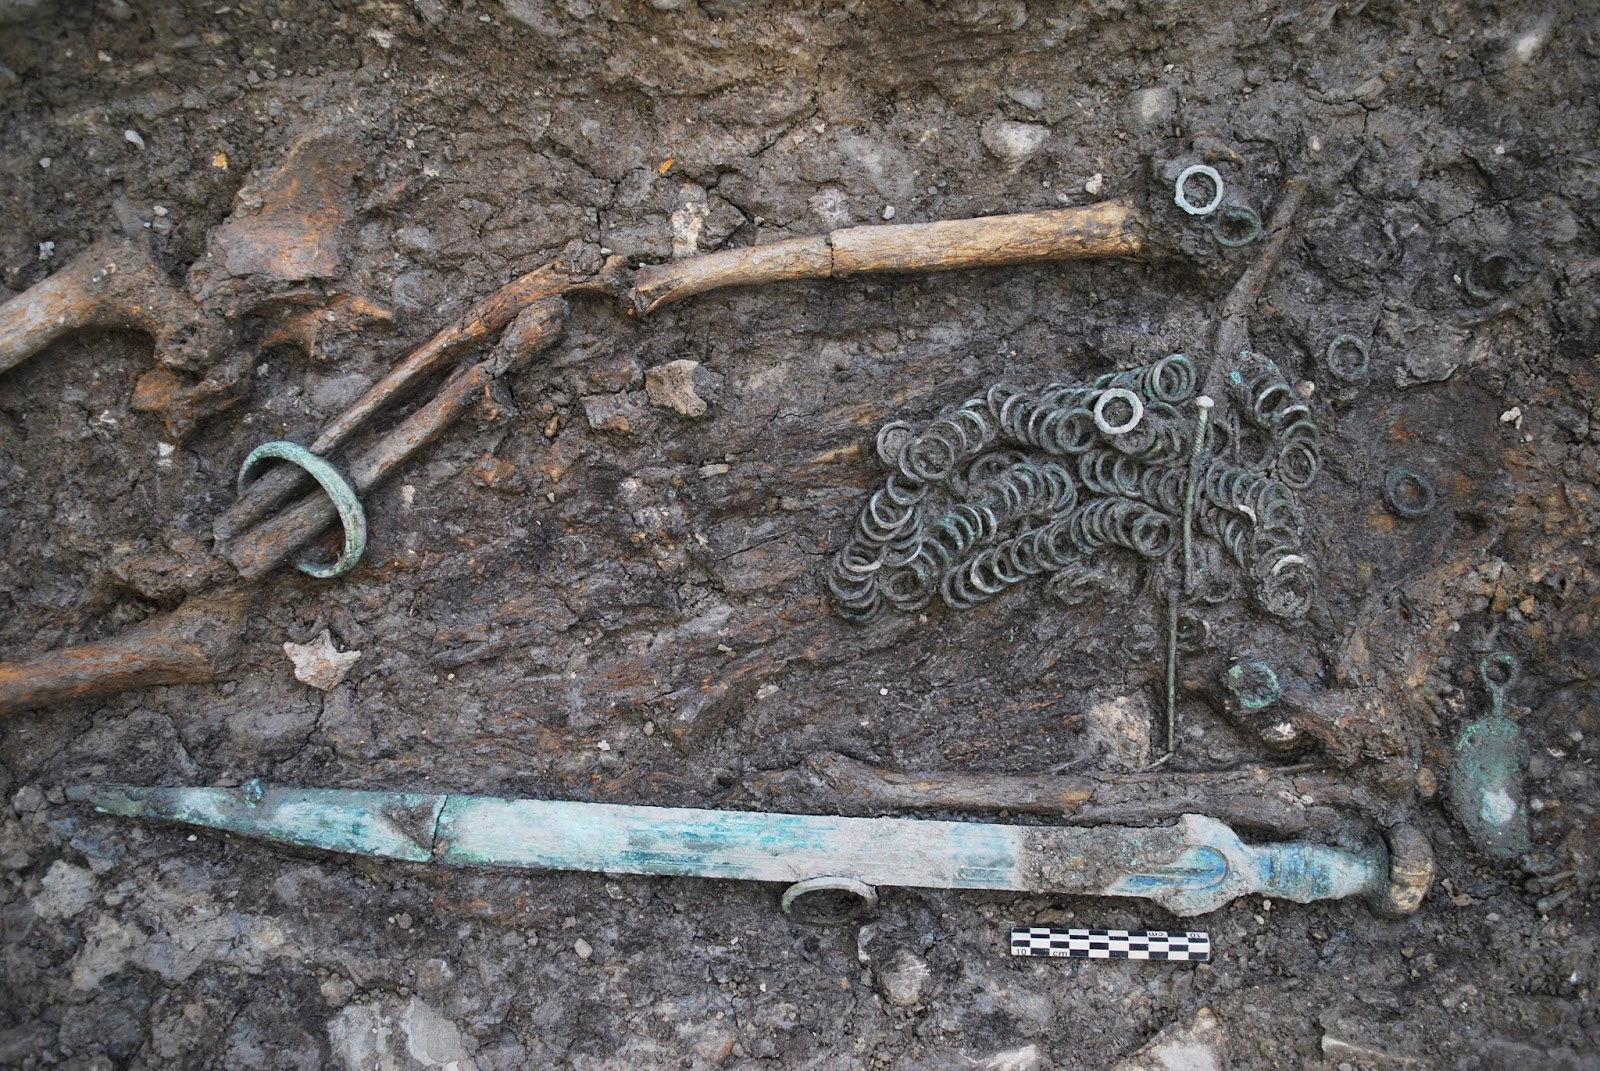 Bronze Age tombs unearthed during car park construction in Switzerland